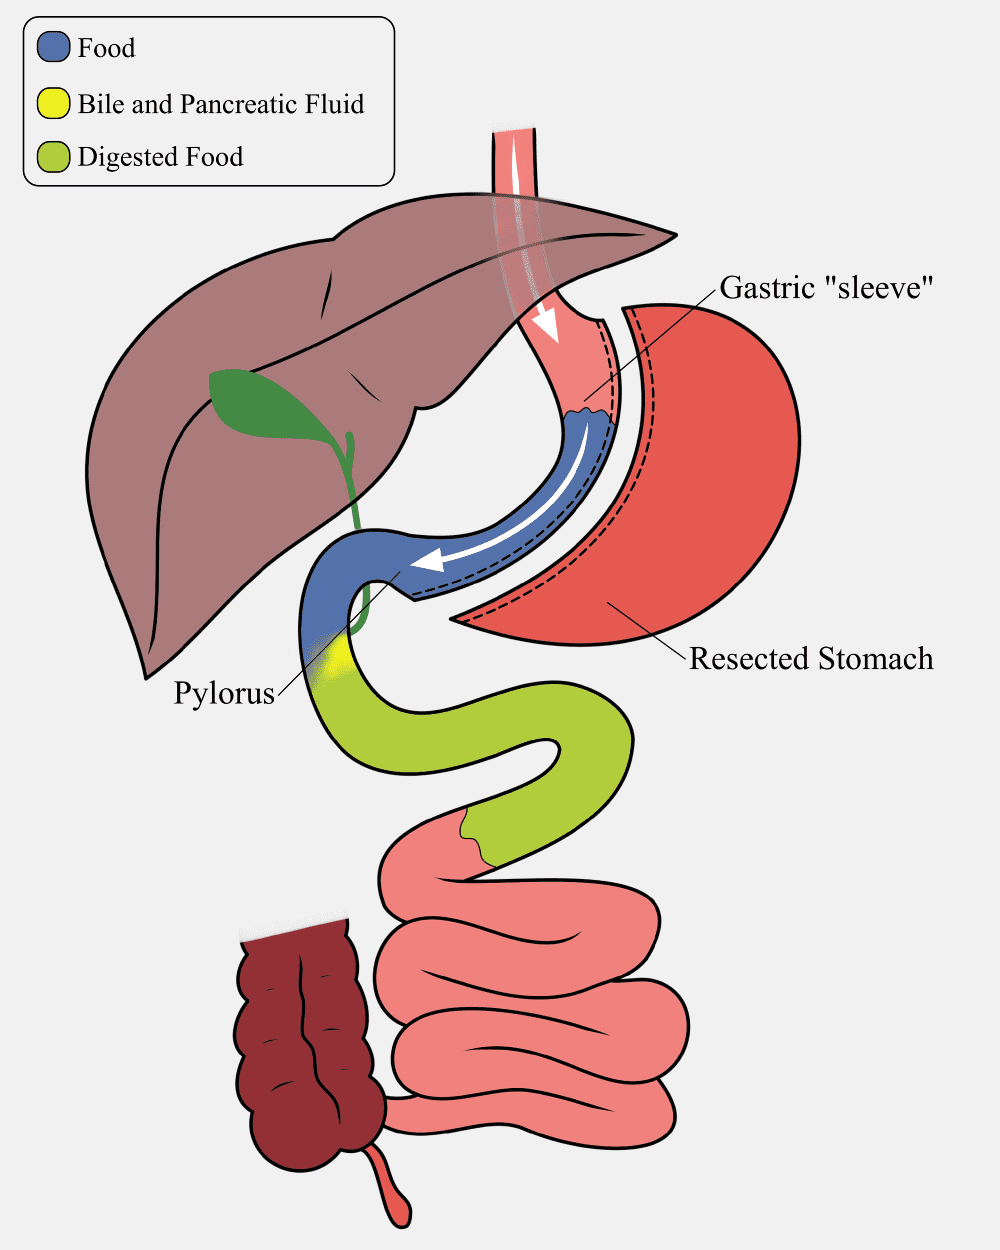 Gastric Sleeve Digestive Tract Image